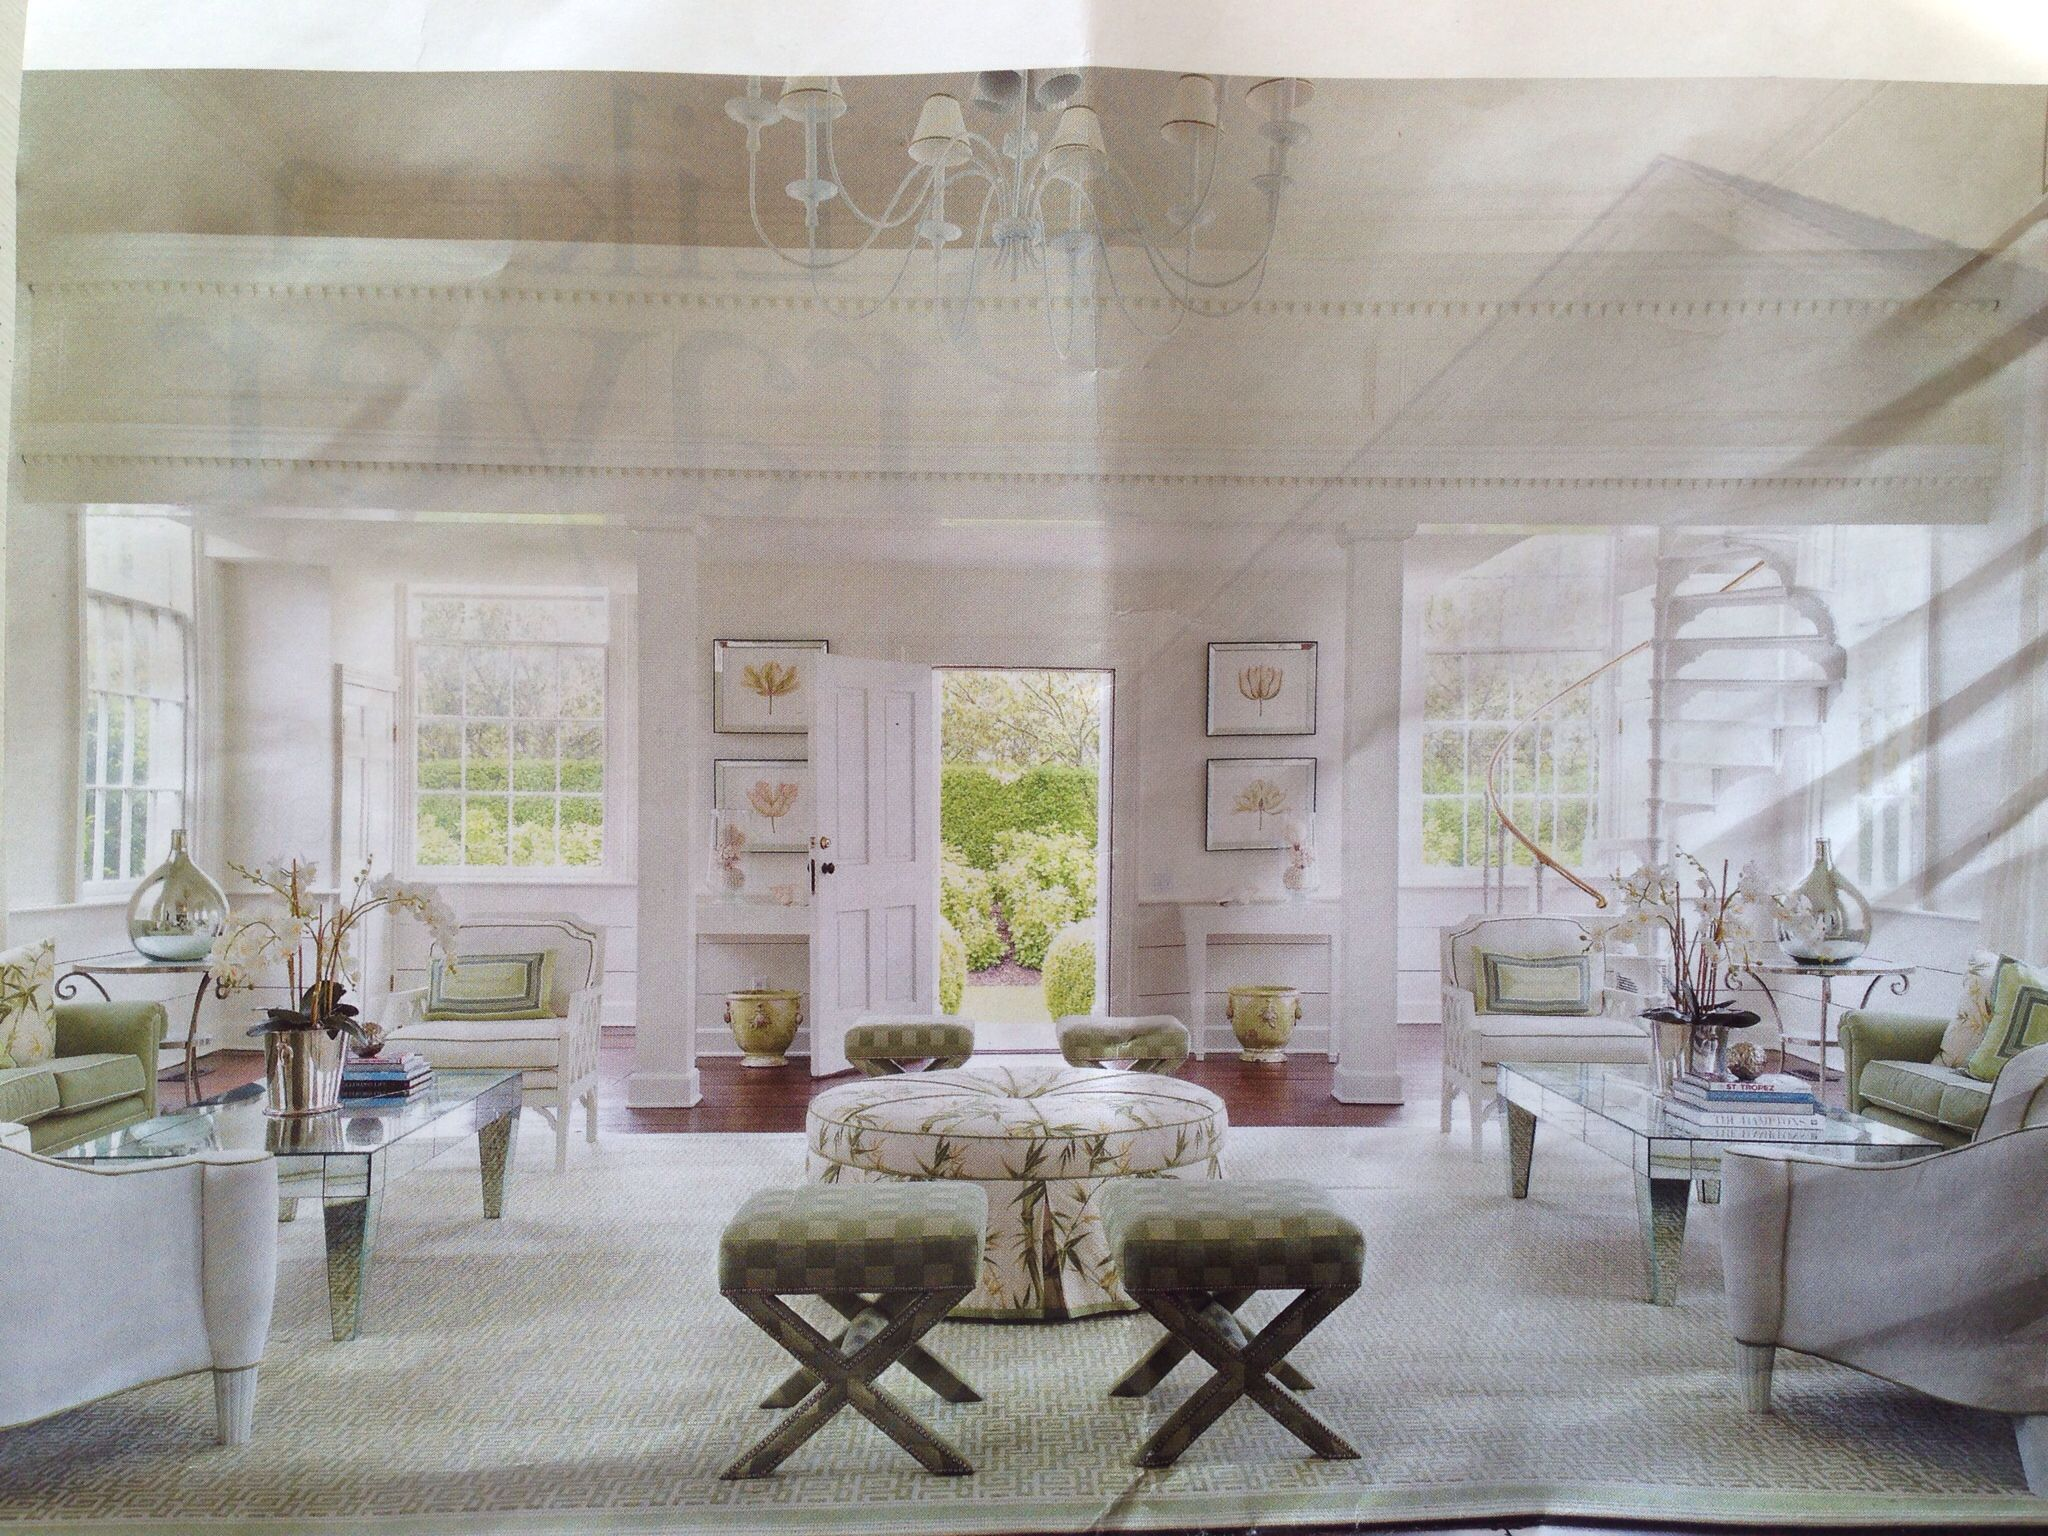 The Perfect Living Room Decorator Andrew Taiani Designed Coffee Tables And Ottoman Fabric Is From Carleton V 1930s Chandelier An Original